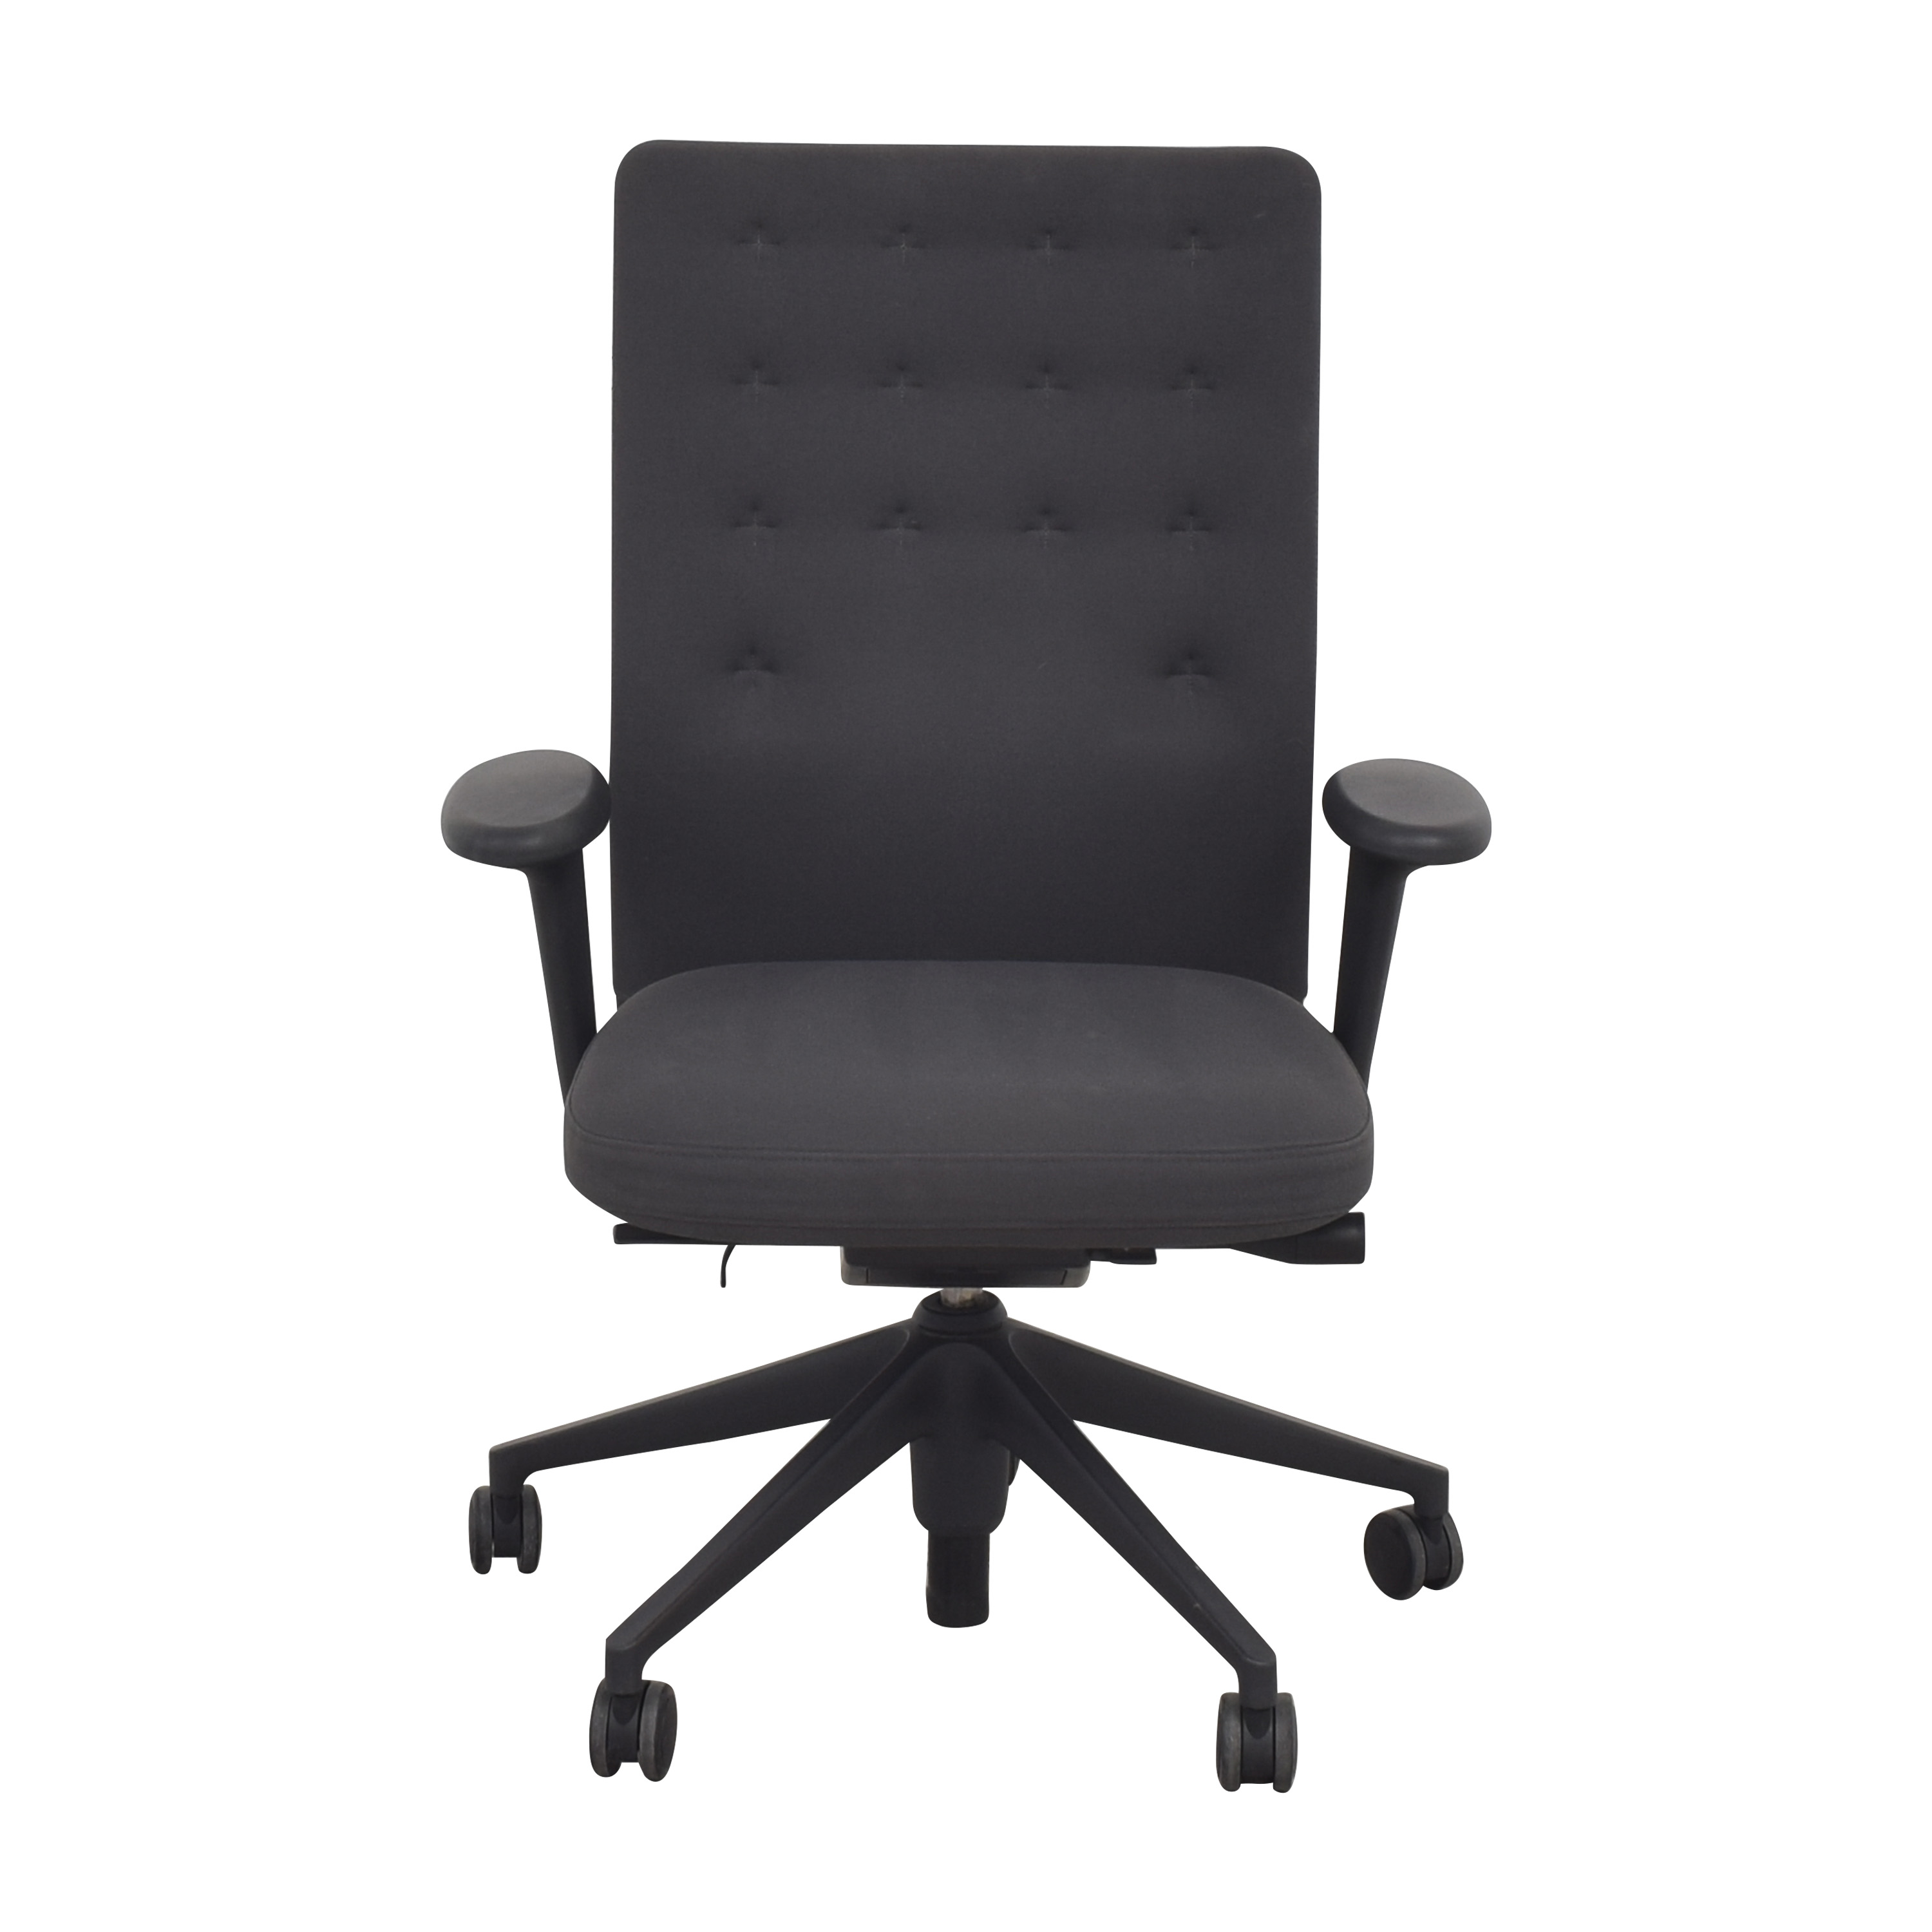 Vitra Vitra ID Trim Office Chair for sale